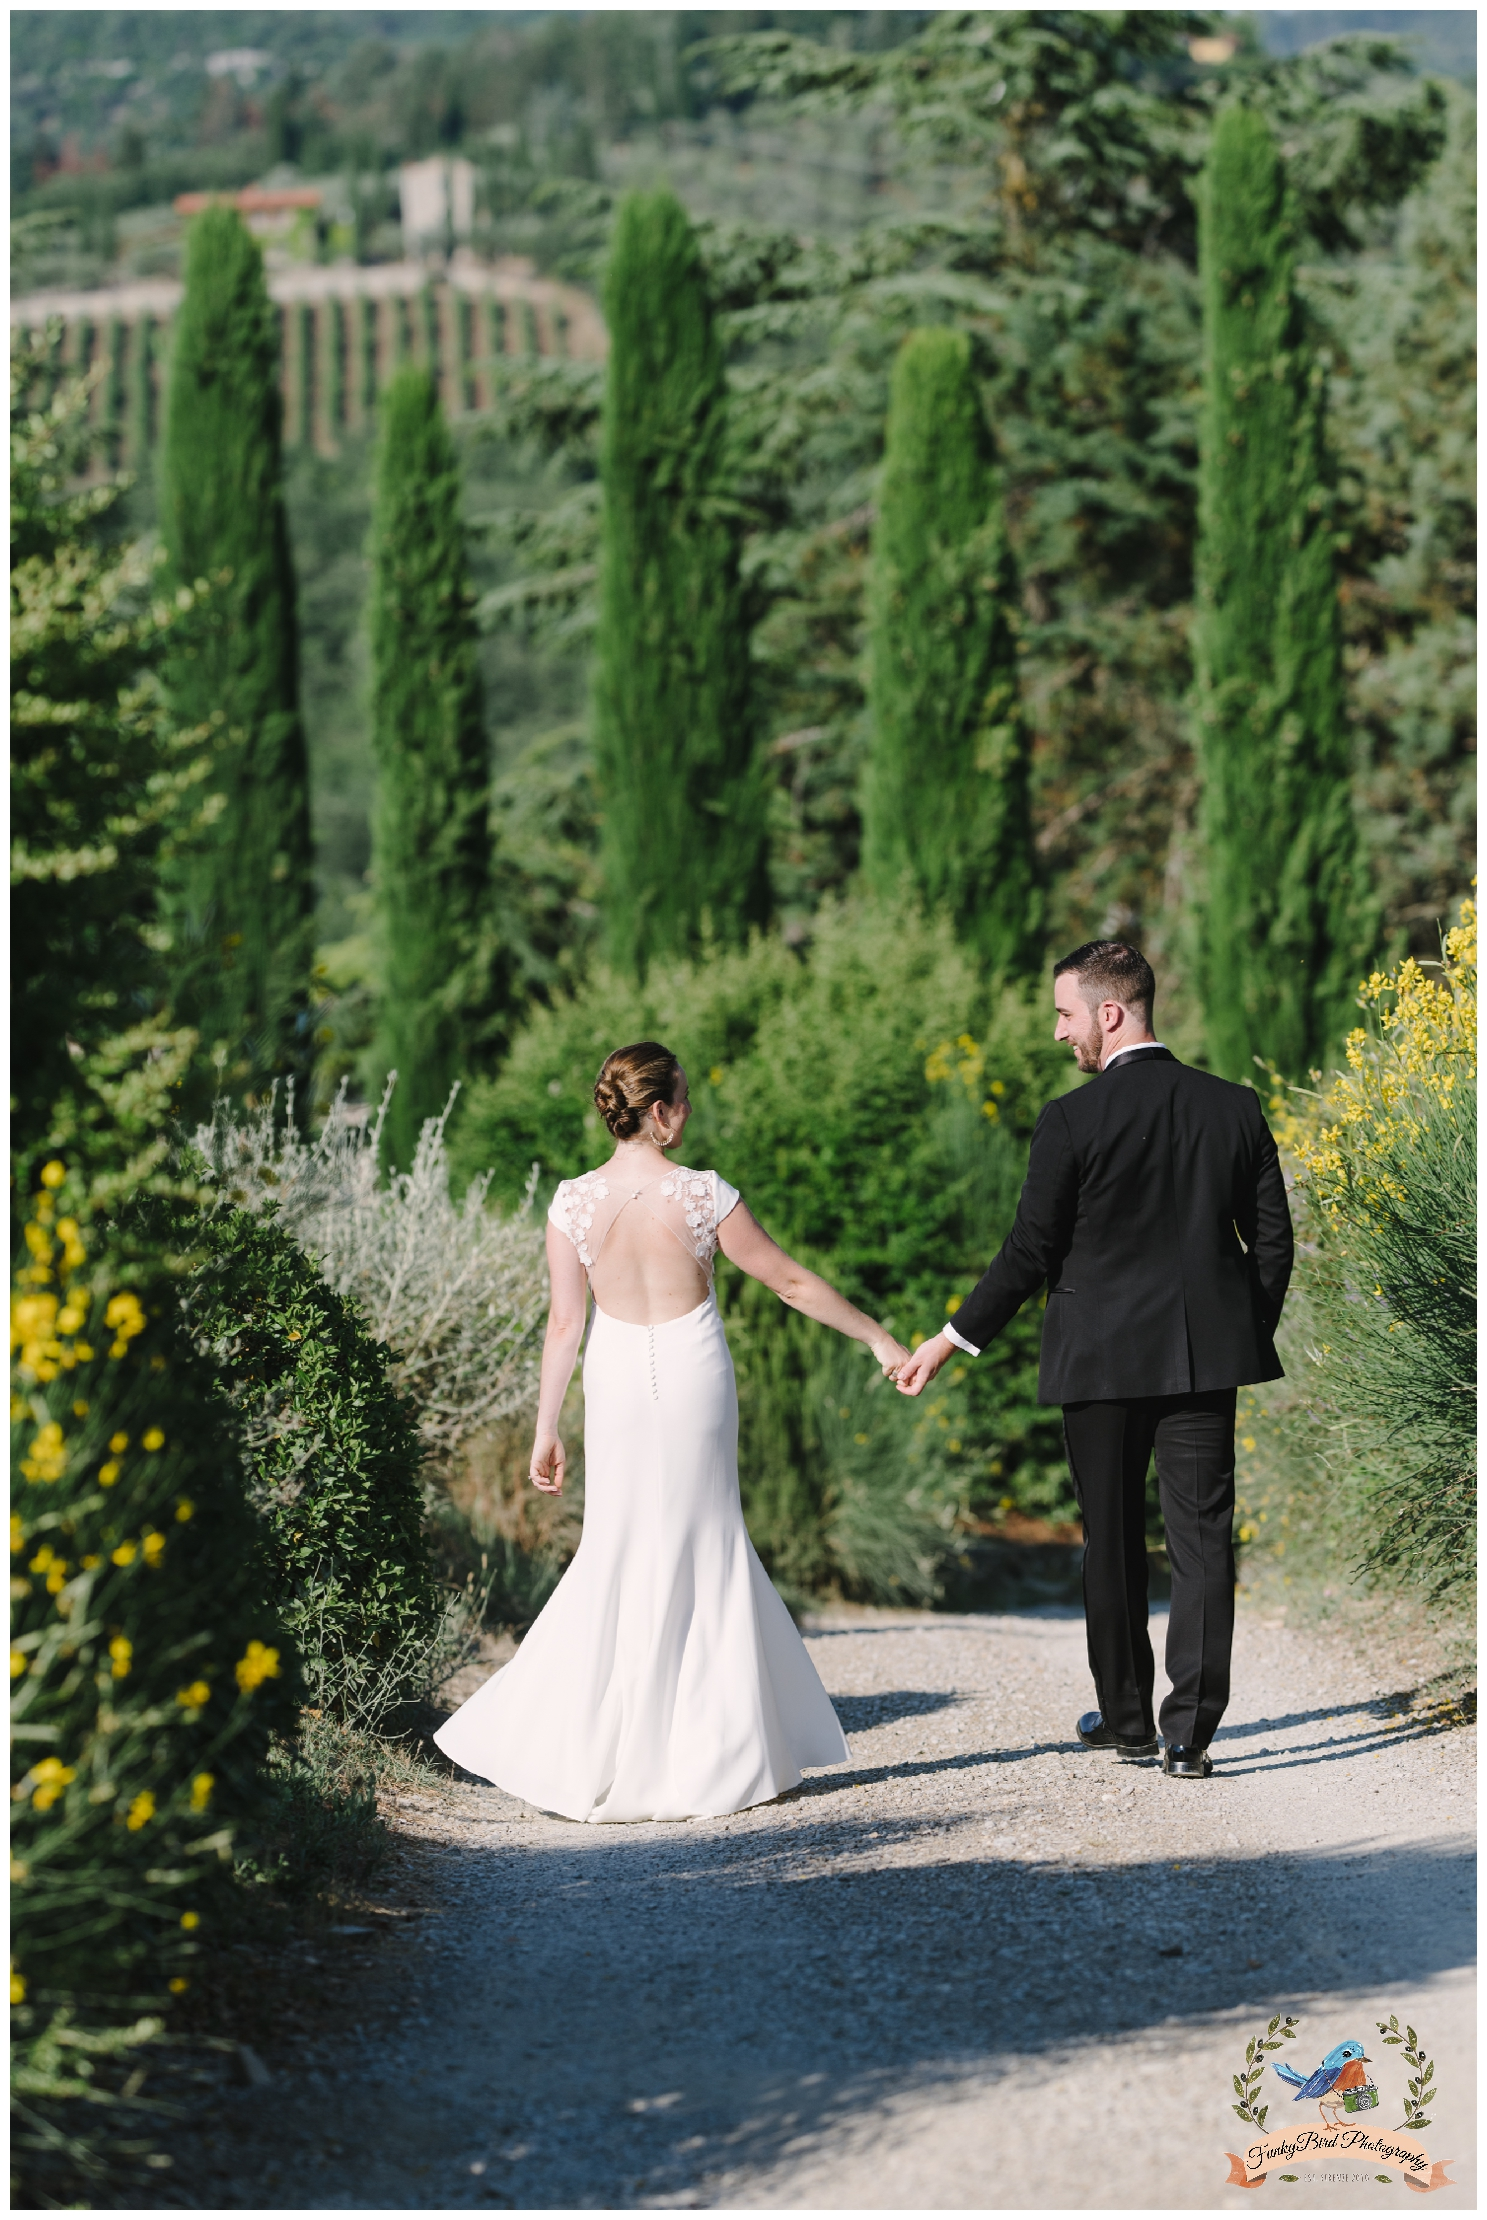 Wedding_Photographer_Tuscany_Italy_0048.jpg